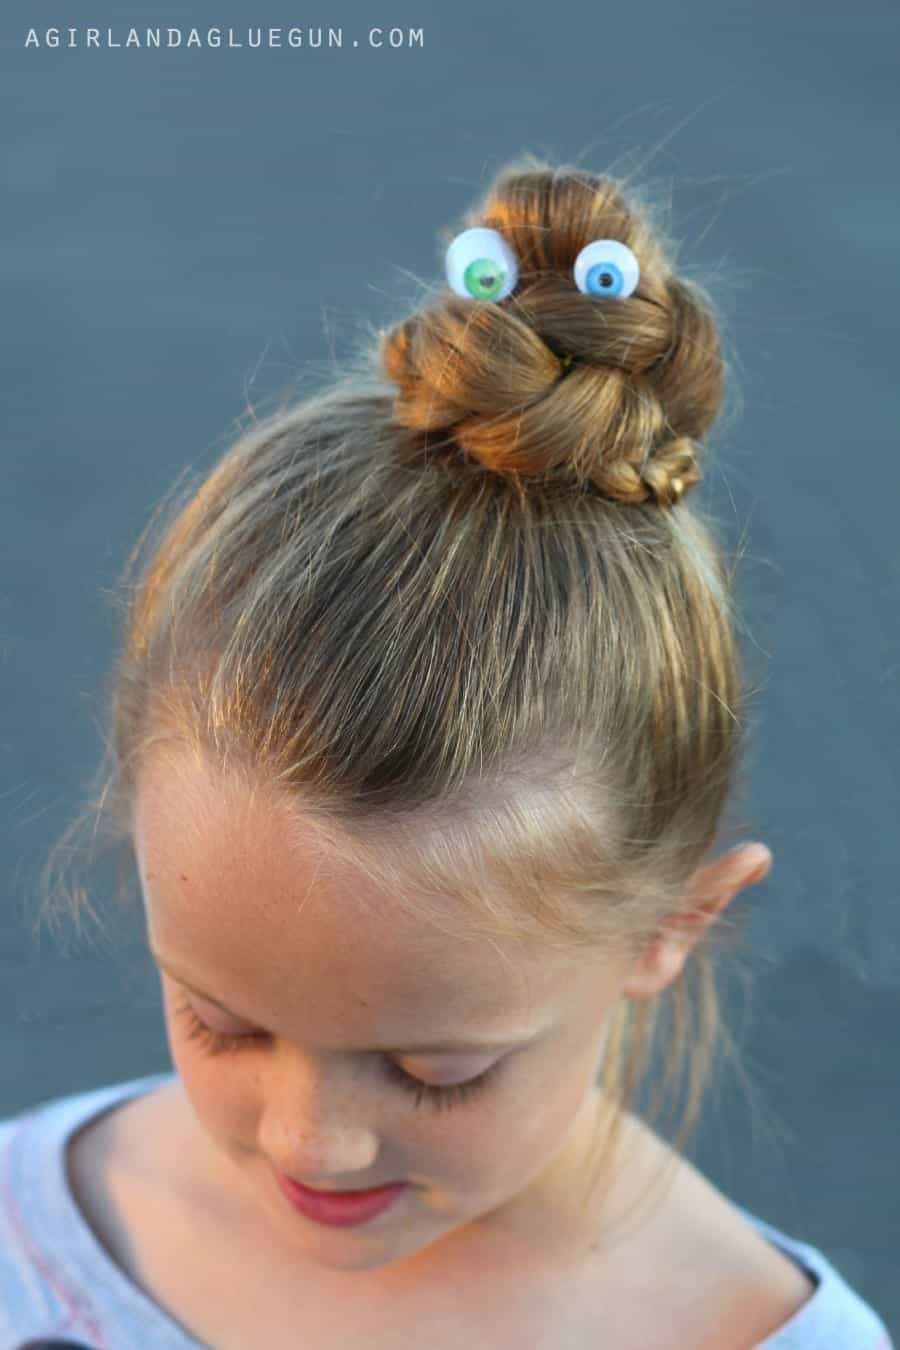 Googly Eye Bobby Pins A Girl And A Glue Gun